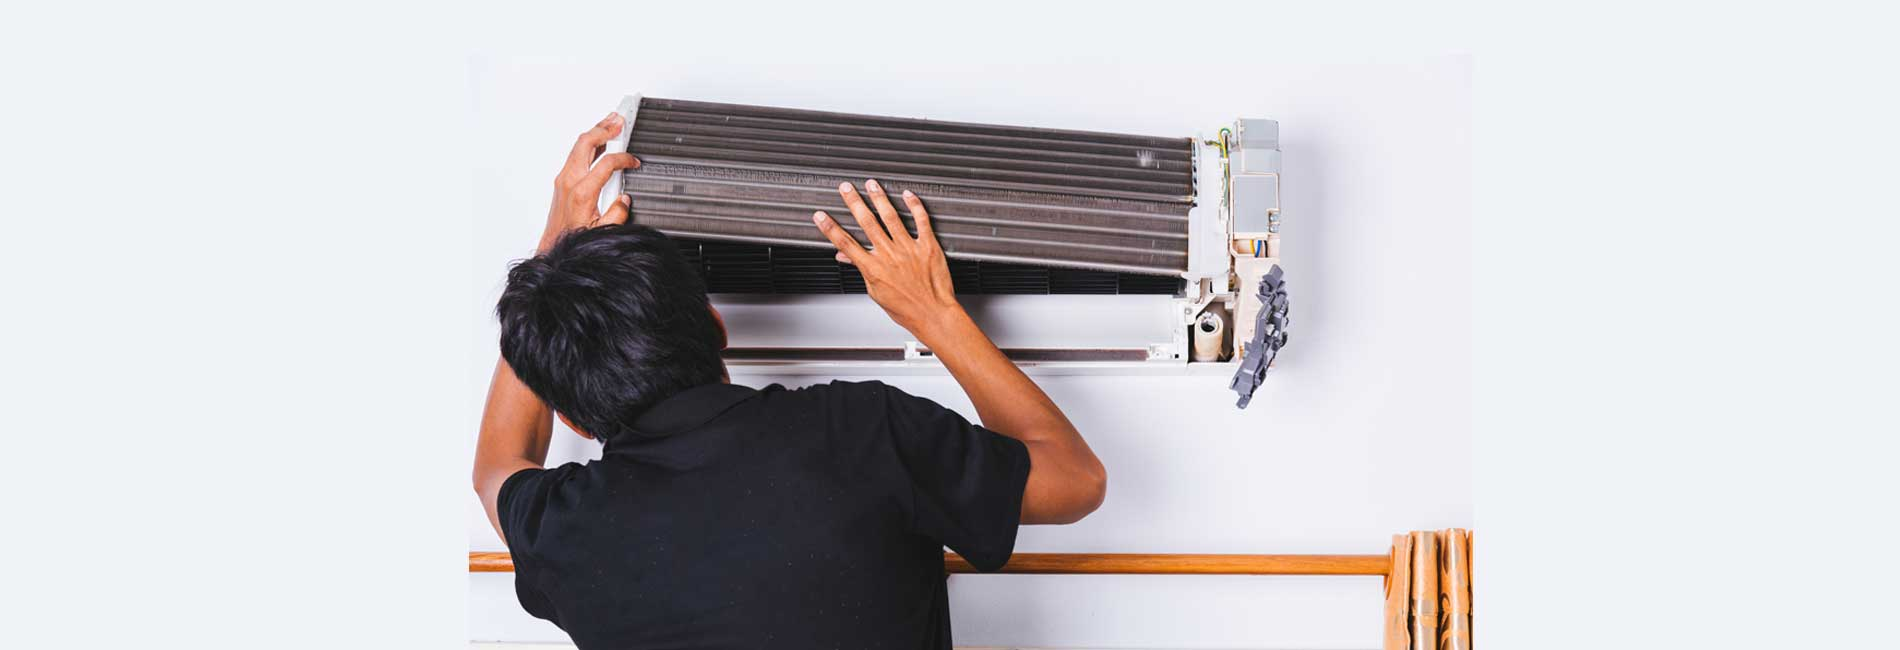 Air Condition Service in Ayanambakkam